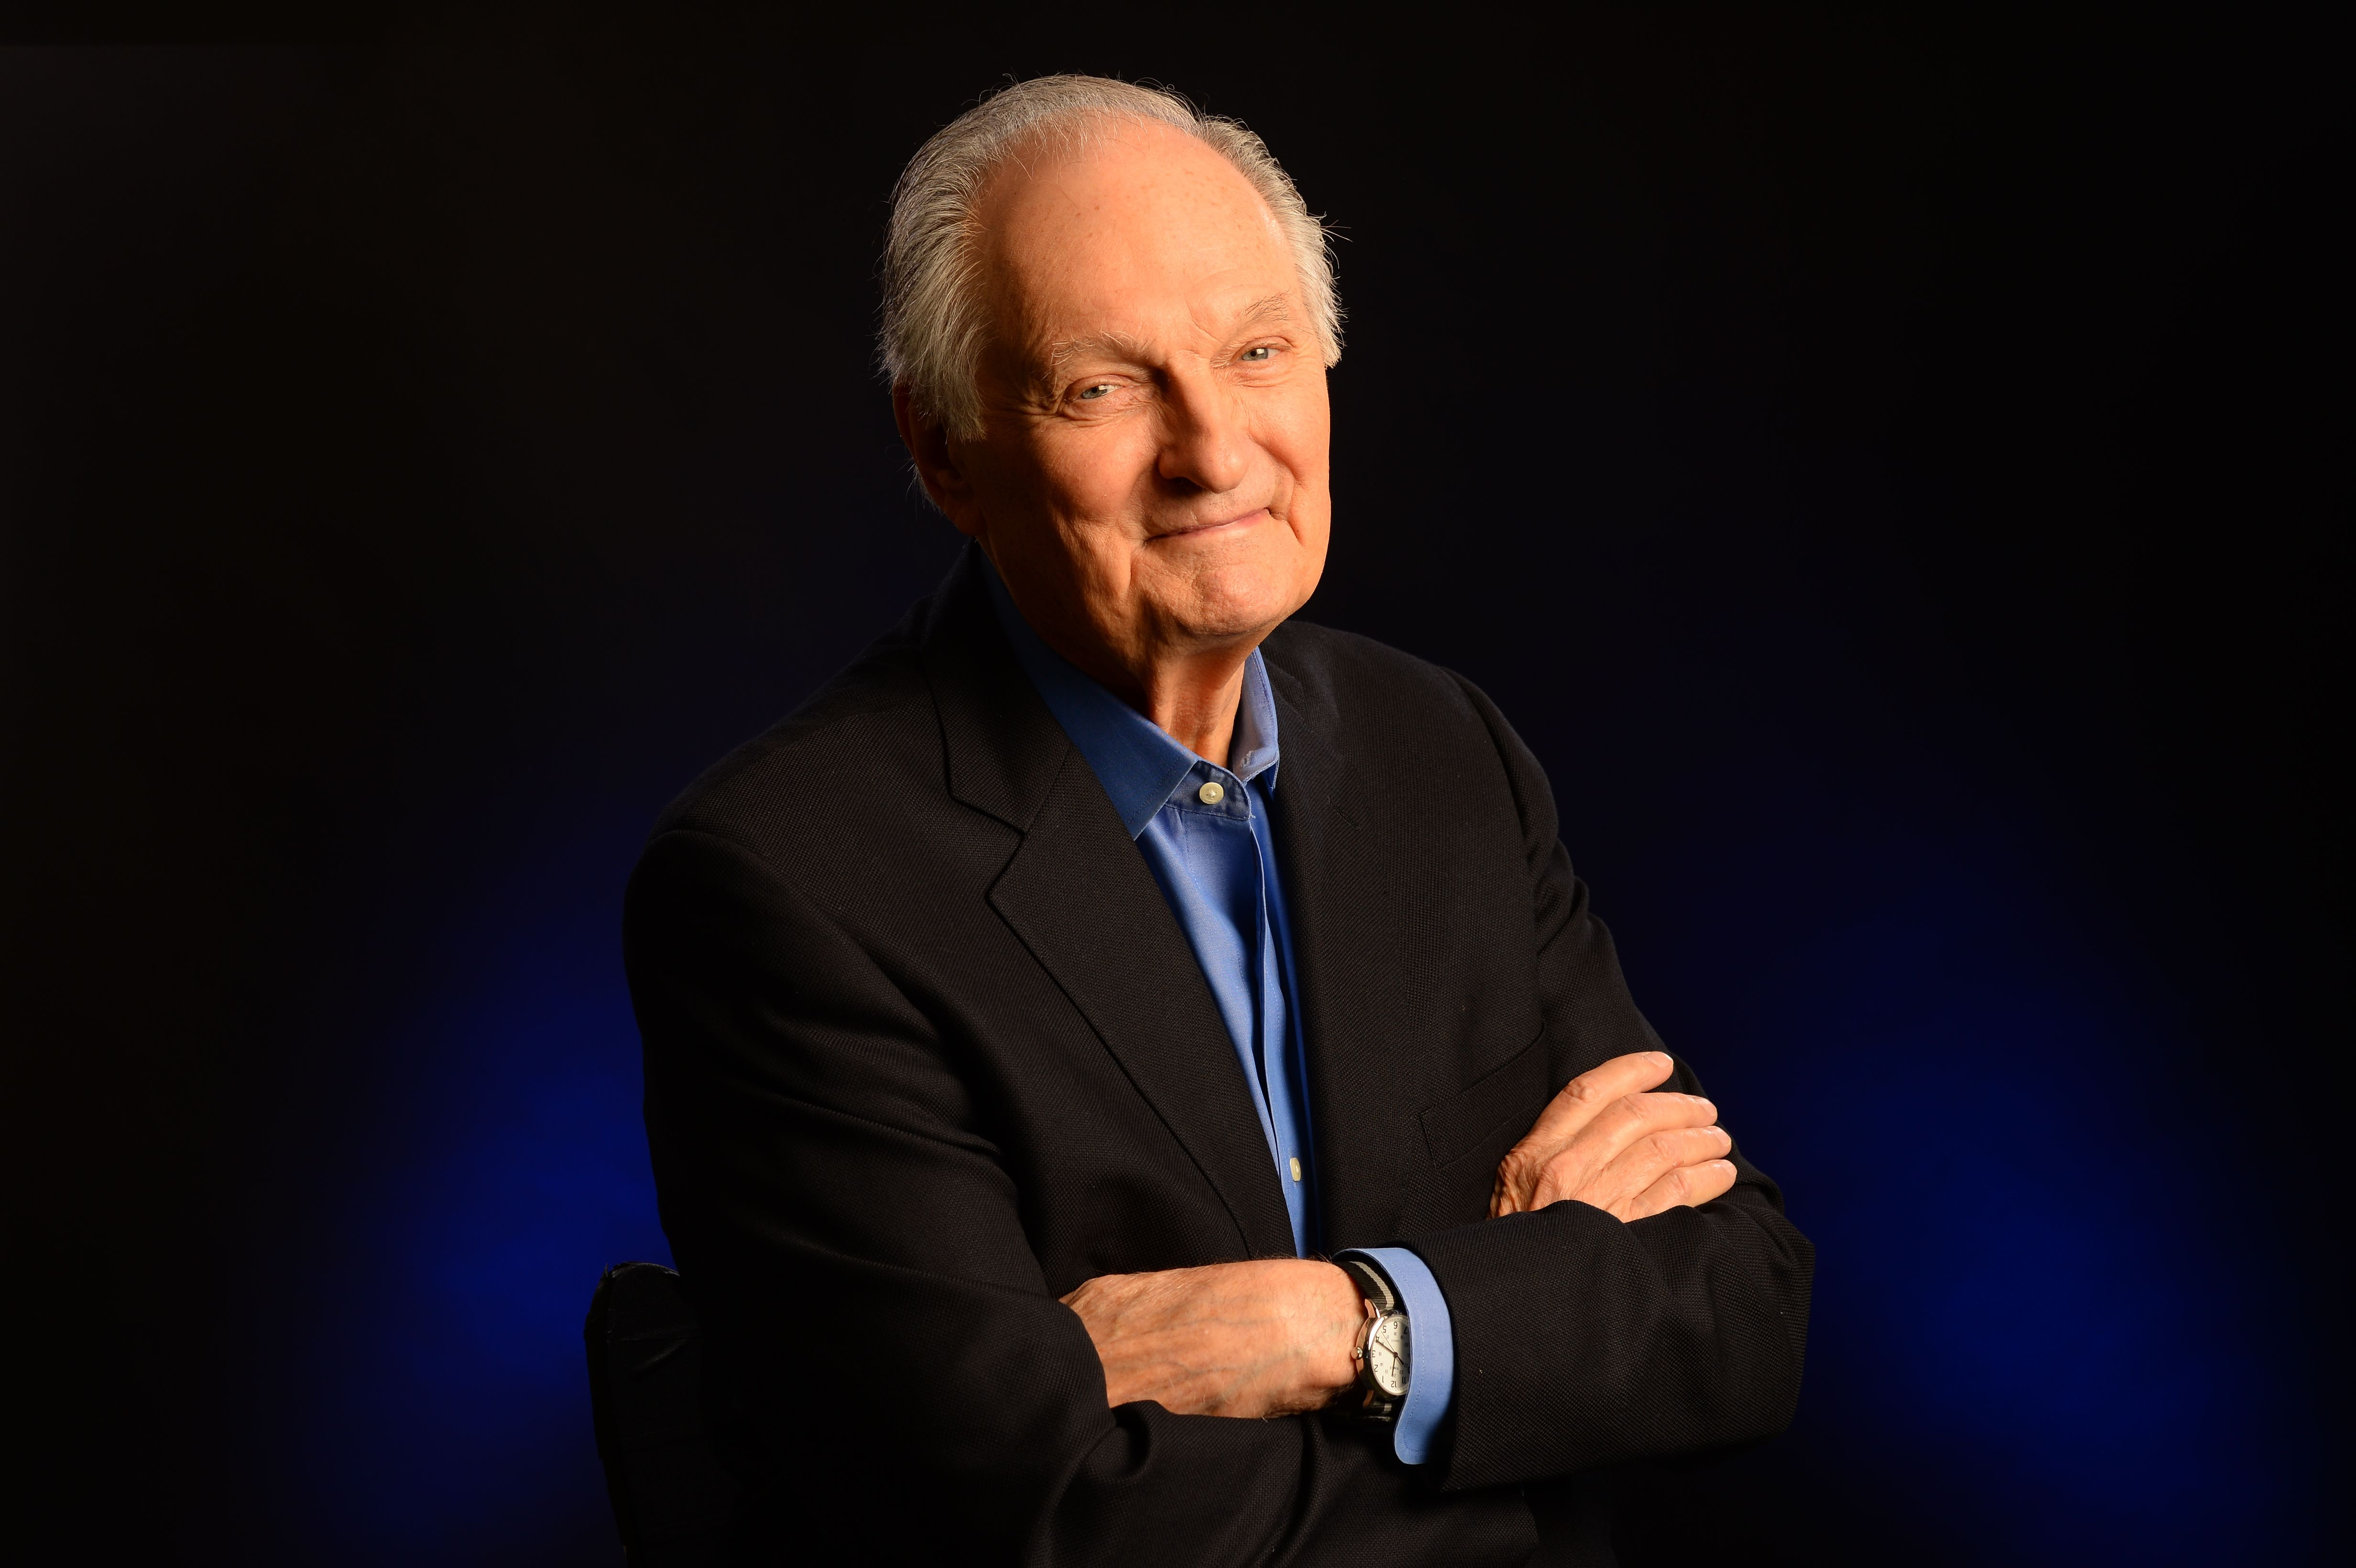 Alan Alda has Parkinson's disease: Here are 5 things you should know